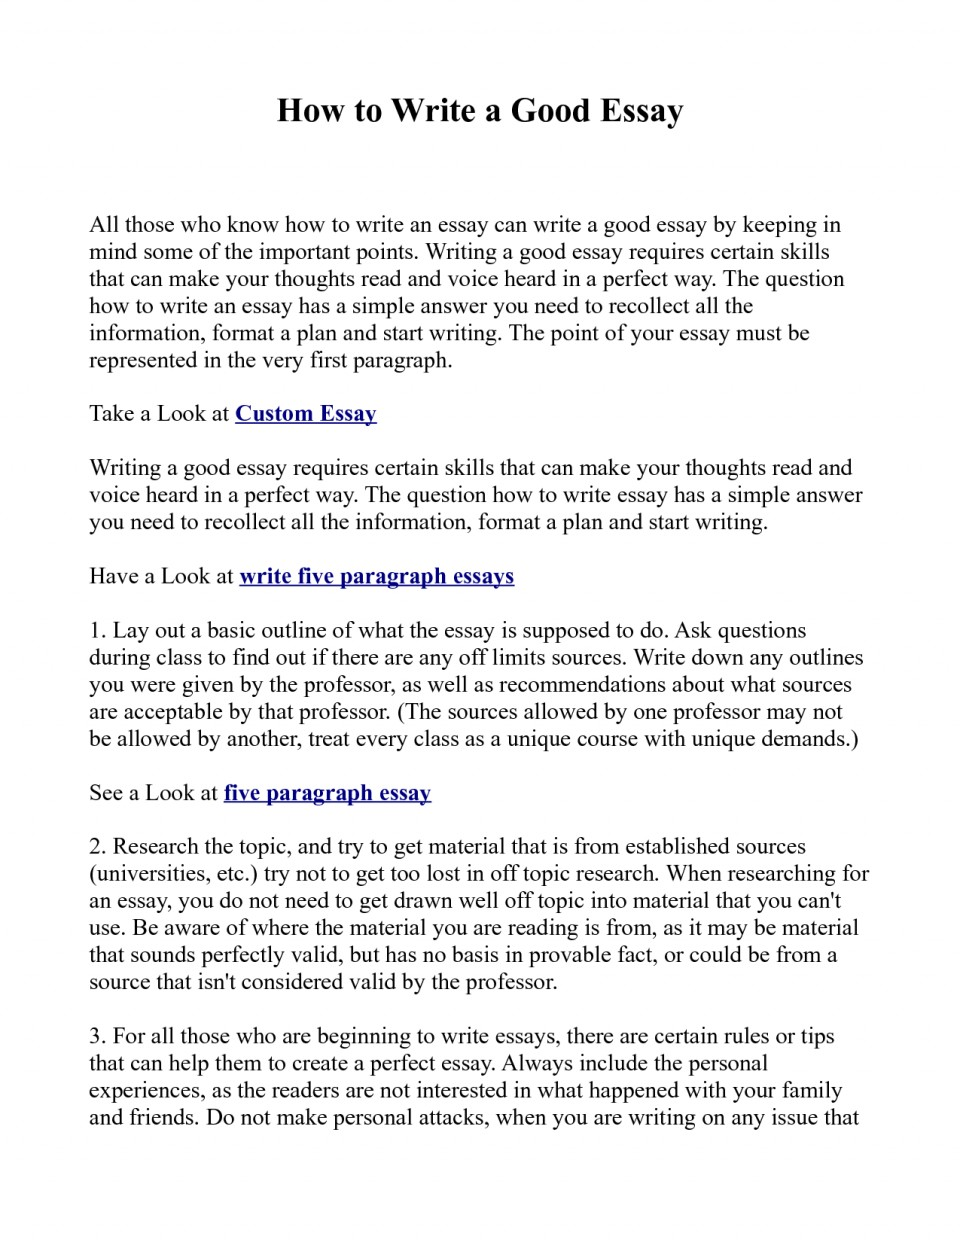 008 Best Essay Topics Ex1id5s6cl Surprising Research Paper For College Student High School Argumentative 960